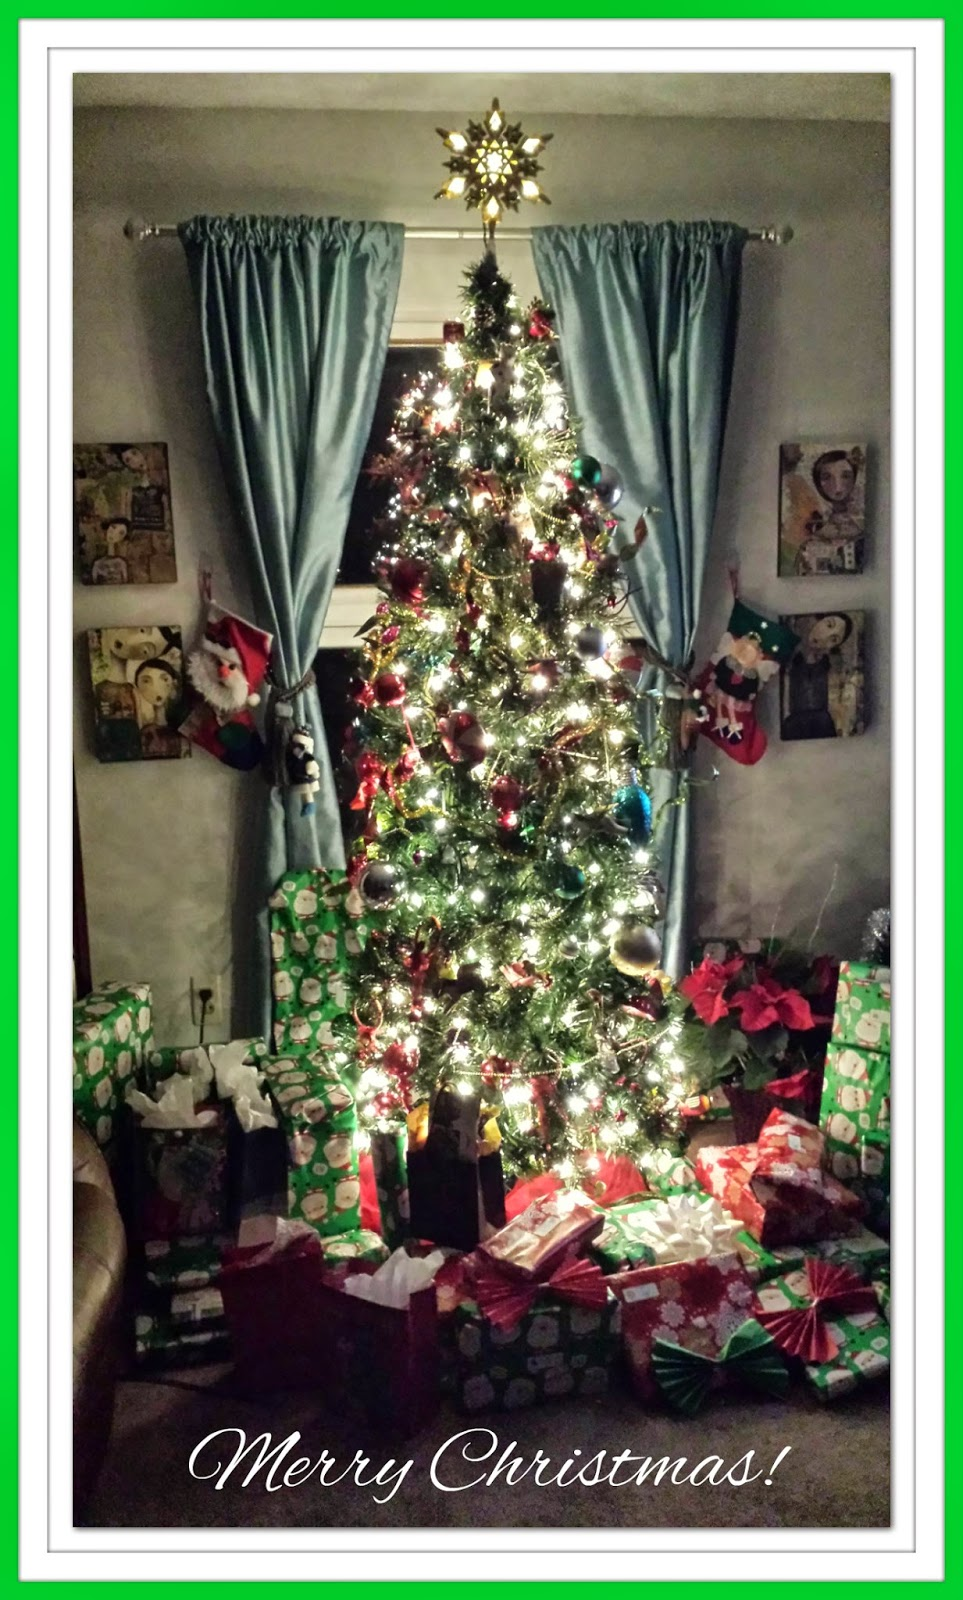 Merry Christmas! --Christmas 2014 How Did I Get Here? My Amazing Genealogy Journey